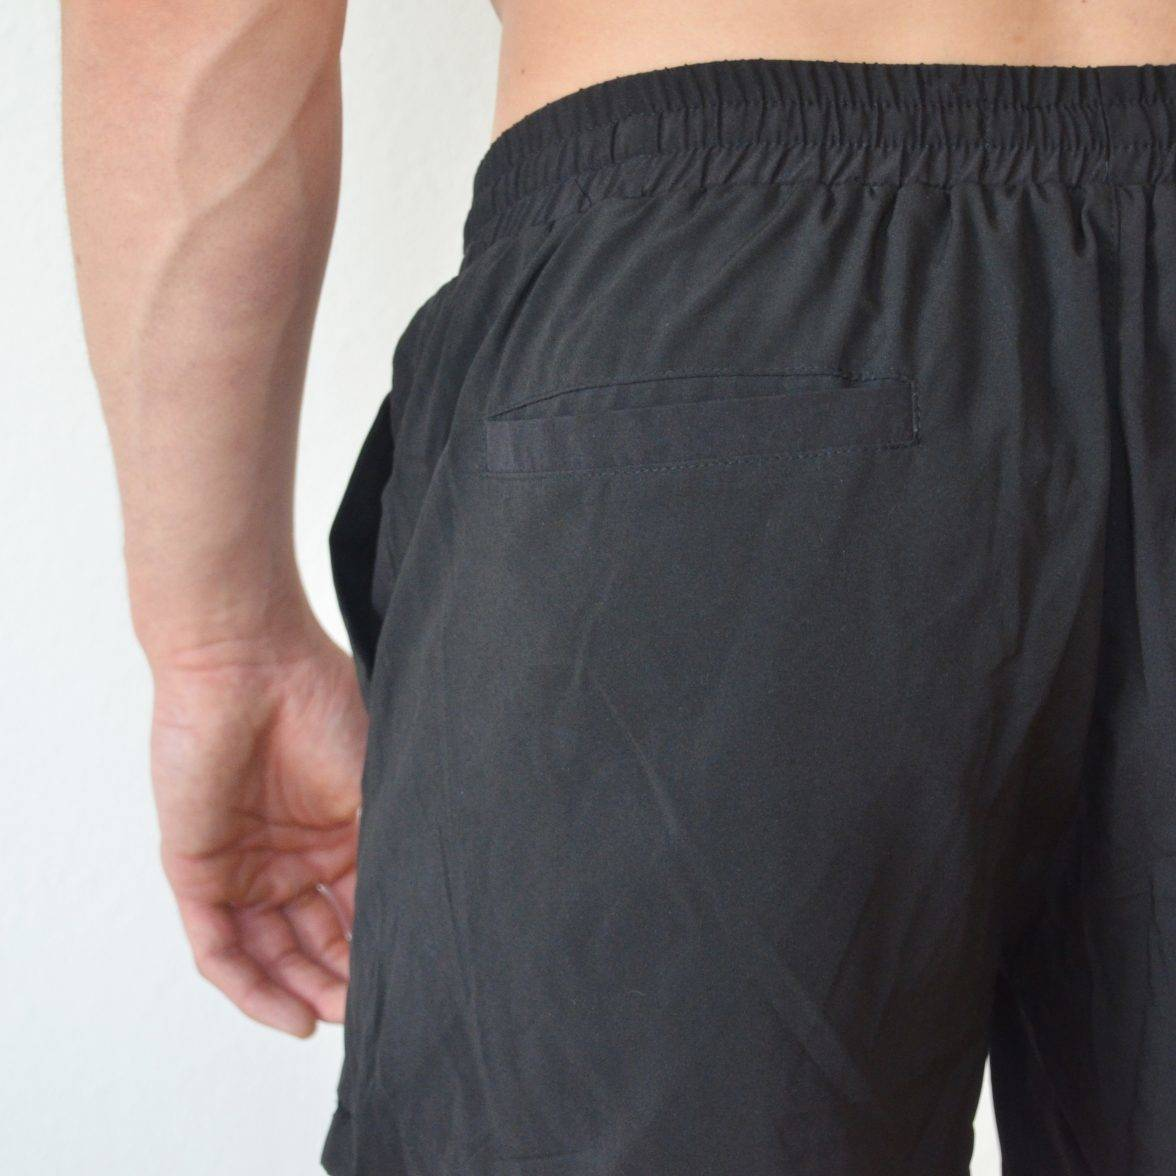 ARROGANZ Shorts Swim short - PAST|FUTURE